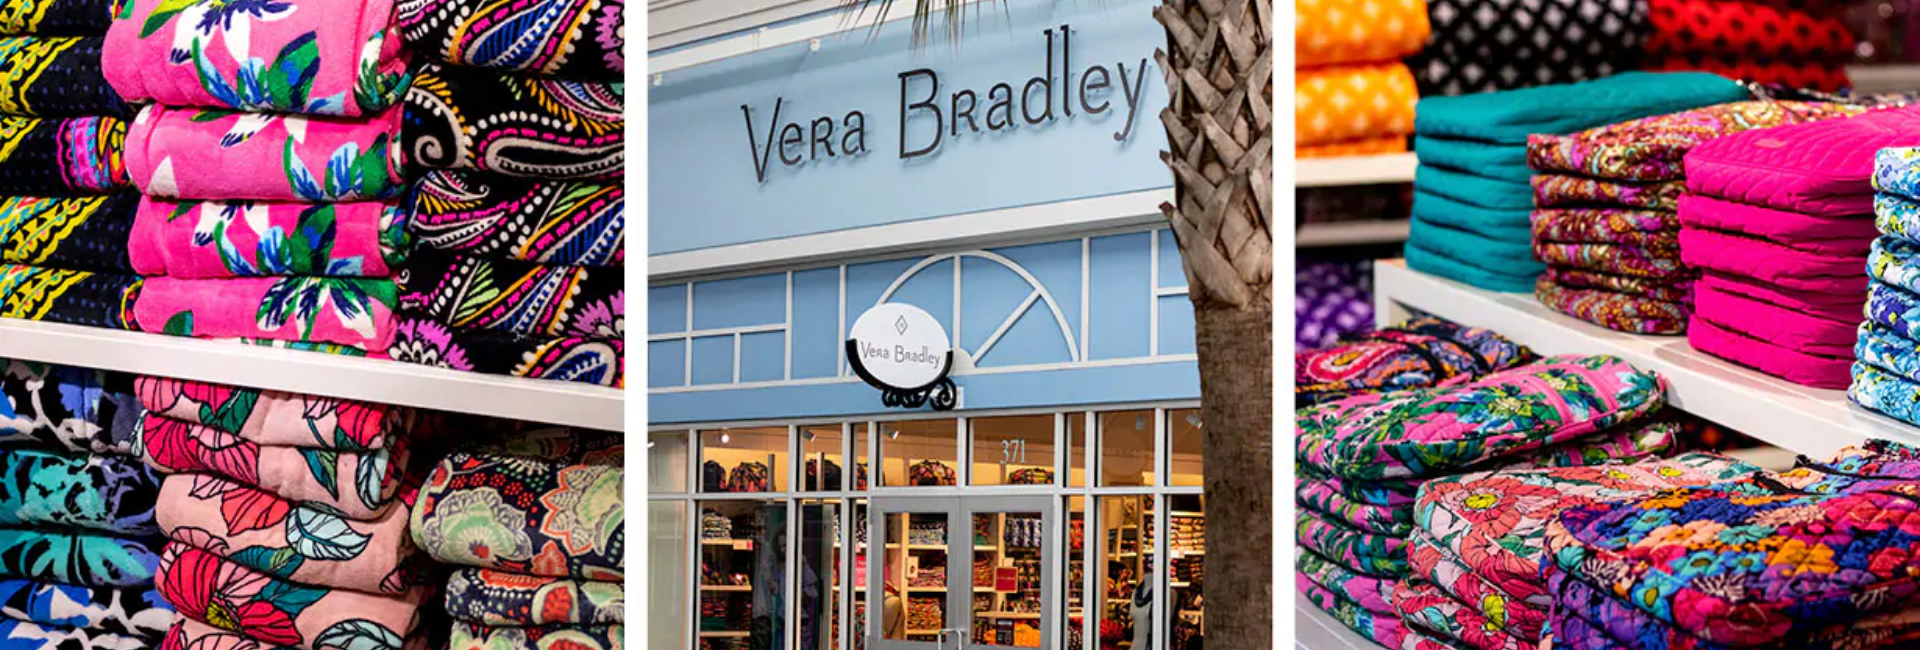 Vera Bradley bags and storefront